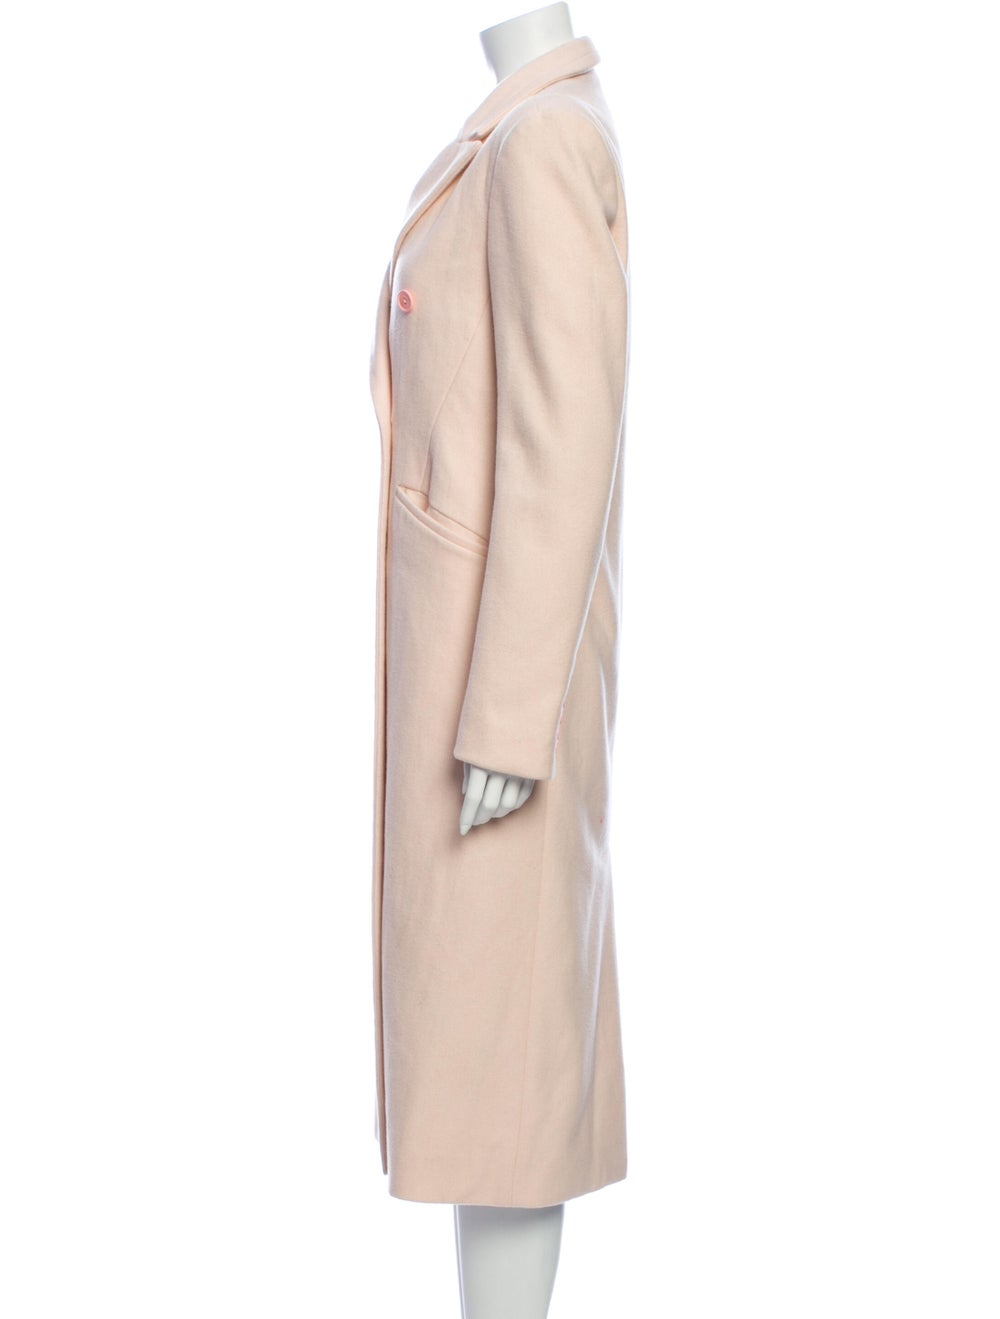 Charles Youssef Trench Coat Pink - image 2